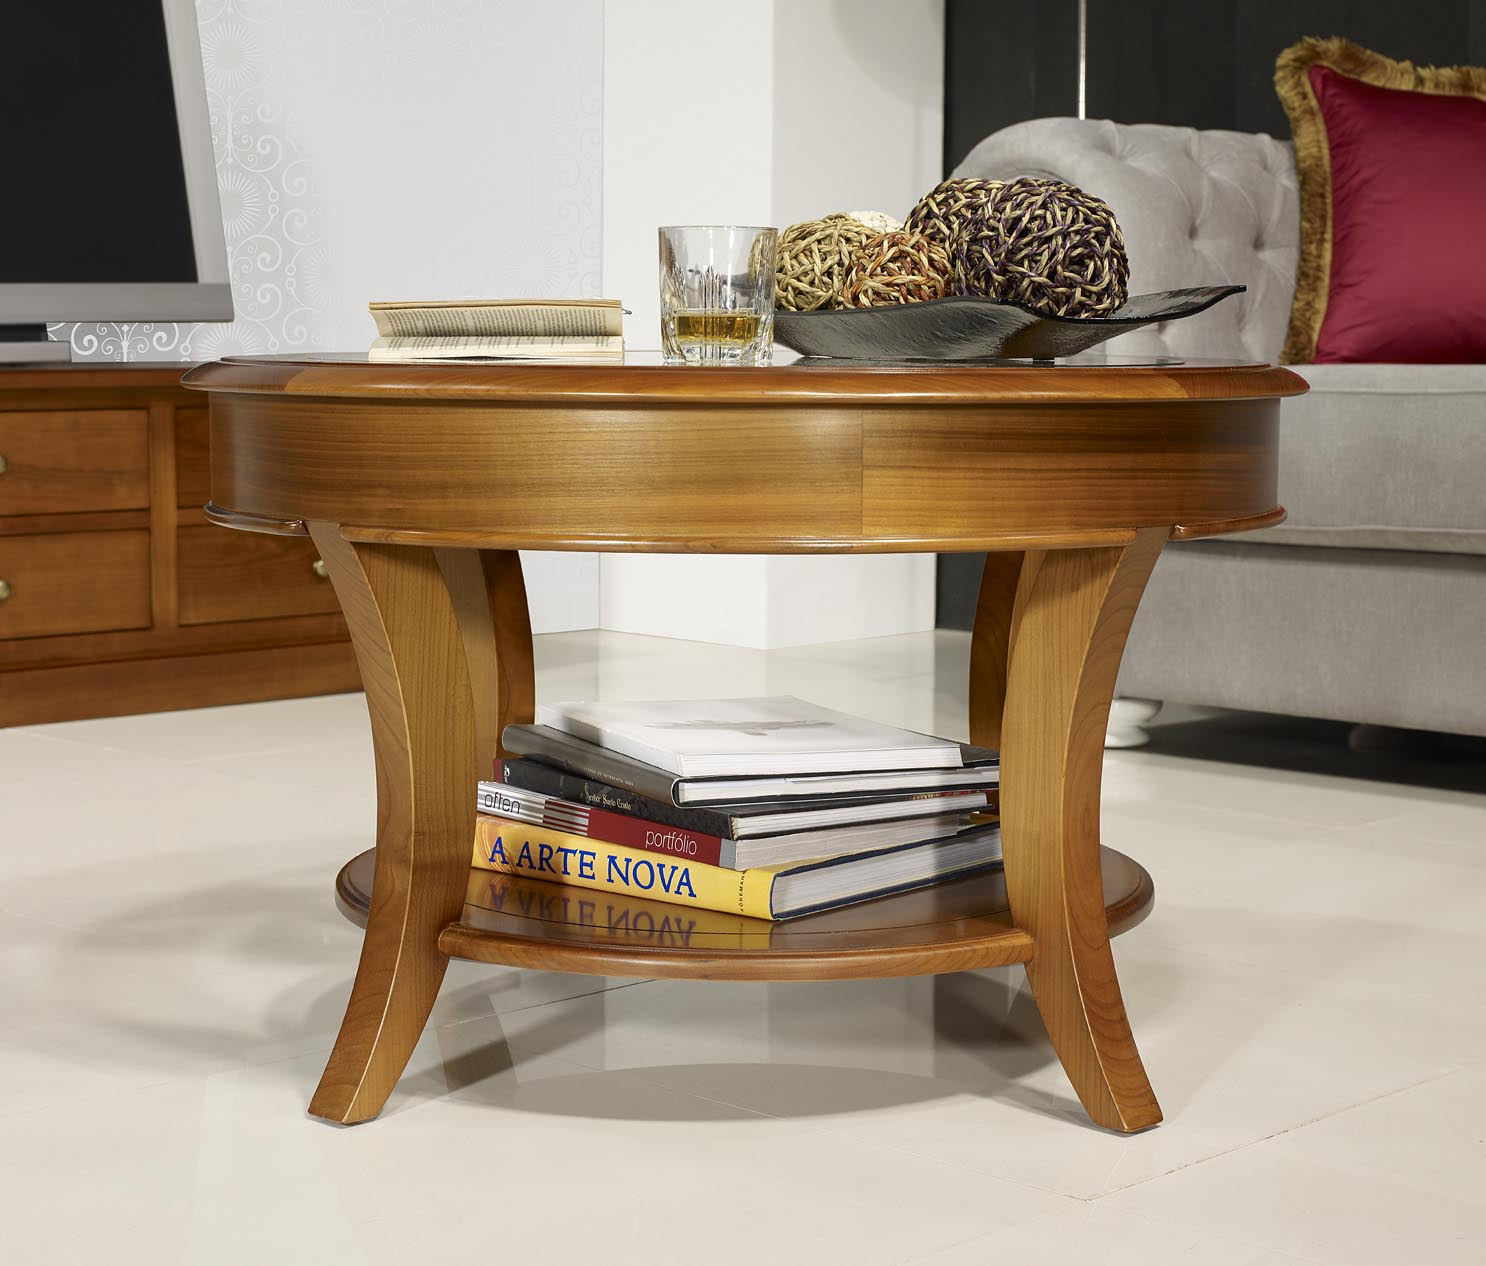 exceptional table basse marocaine bois #11: view images table basse